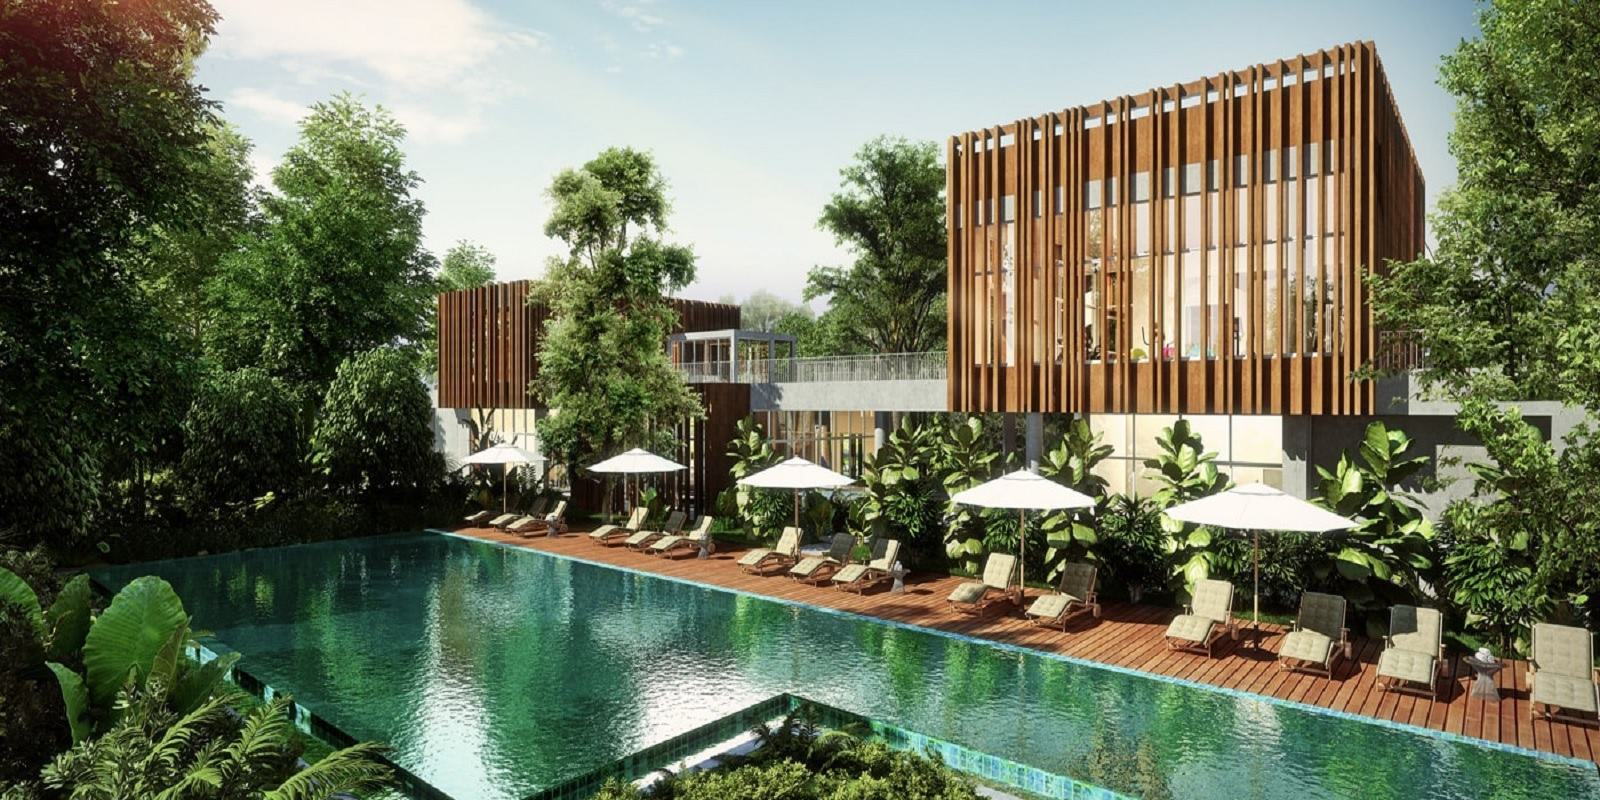 amenities-features-Picture-assetz-earth-and-essence-2064143